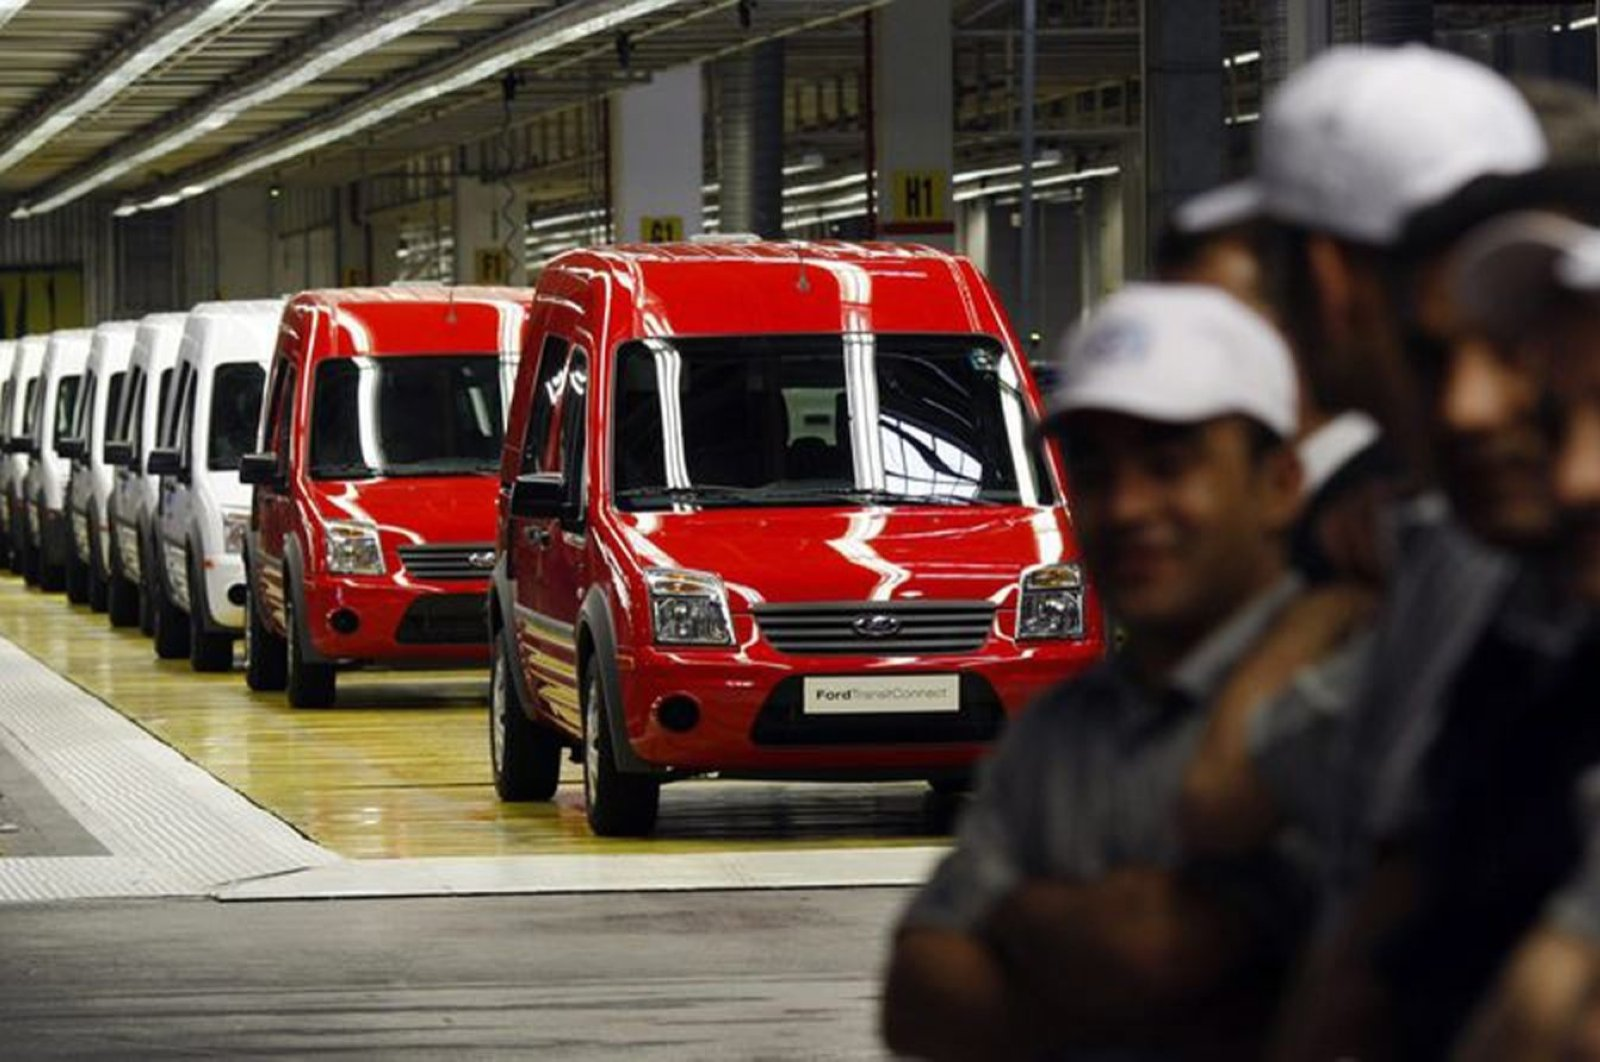 Turkish workers stand near Ford Transit Connect compact panel vans during a ceremony at the Ford Otosan Ihsaniye car plant near the western city of Kocaeli, Turkey, May 22, 2009. (Reuters Photo)